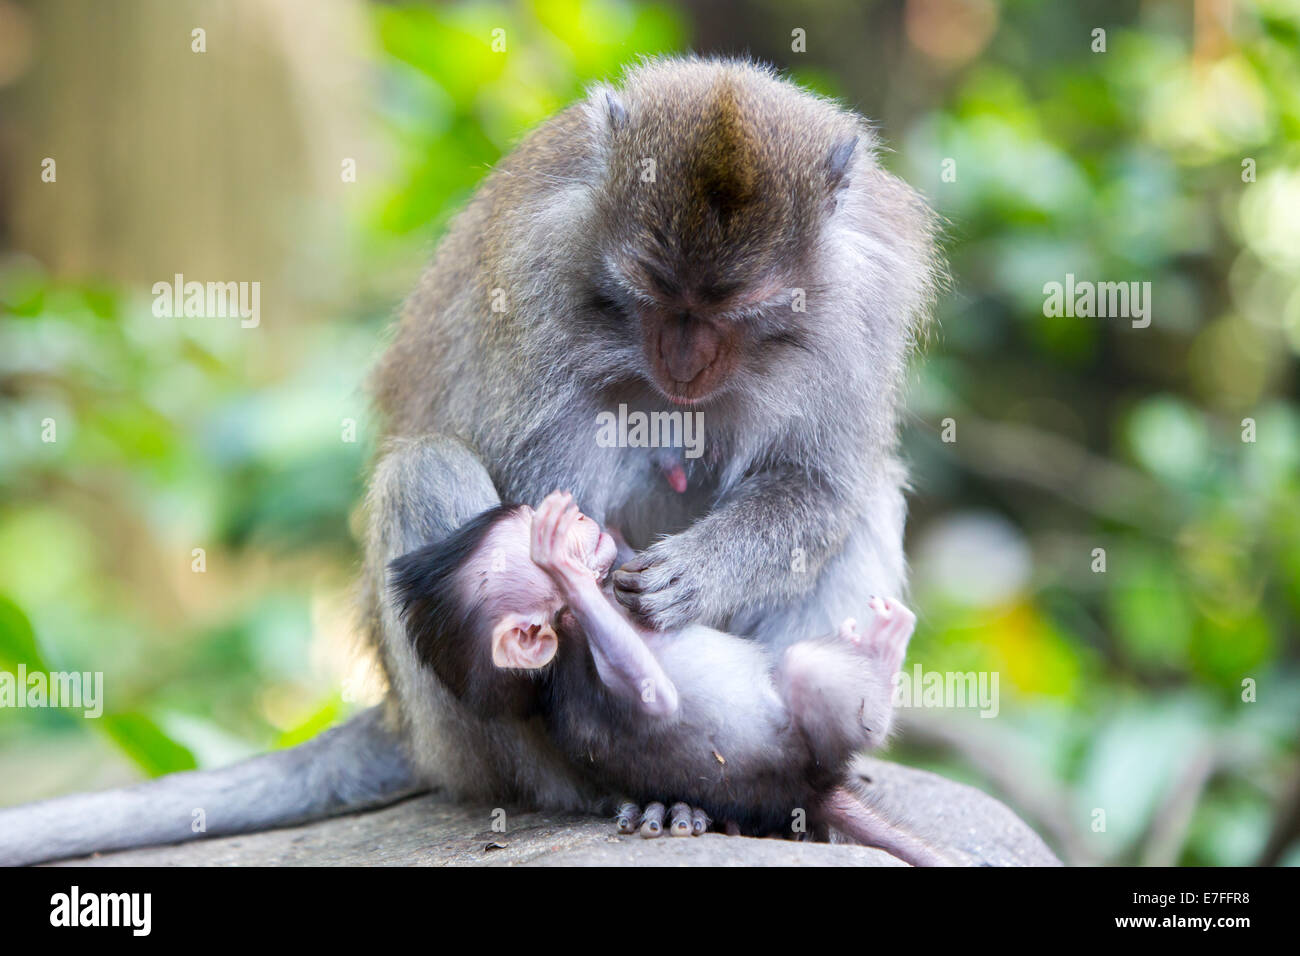 A protective mother protects and plays with her baby in Monkey Forest, Ubud, Bali, Indonesia. - Stock Image